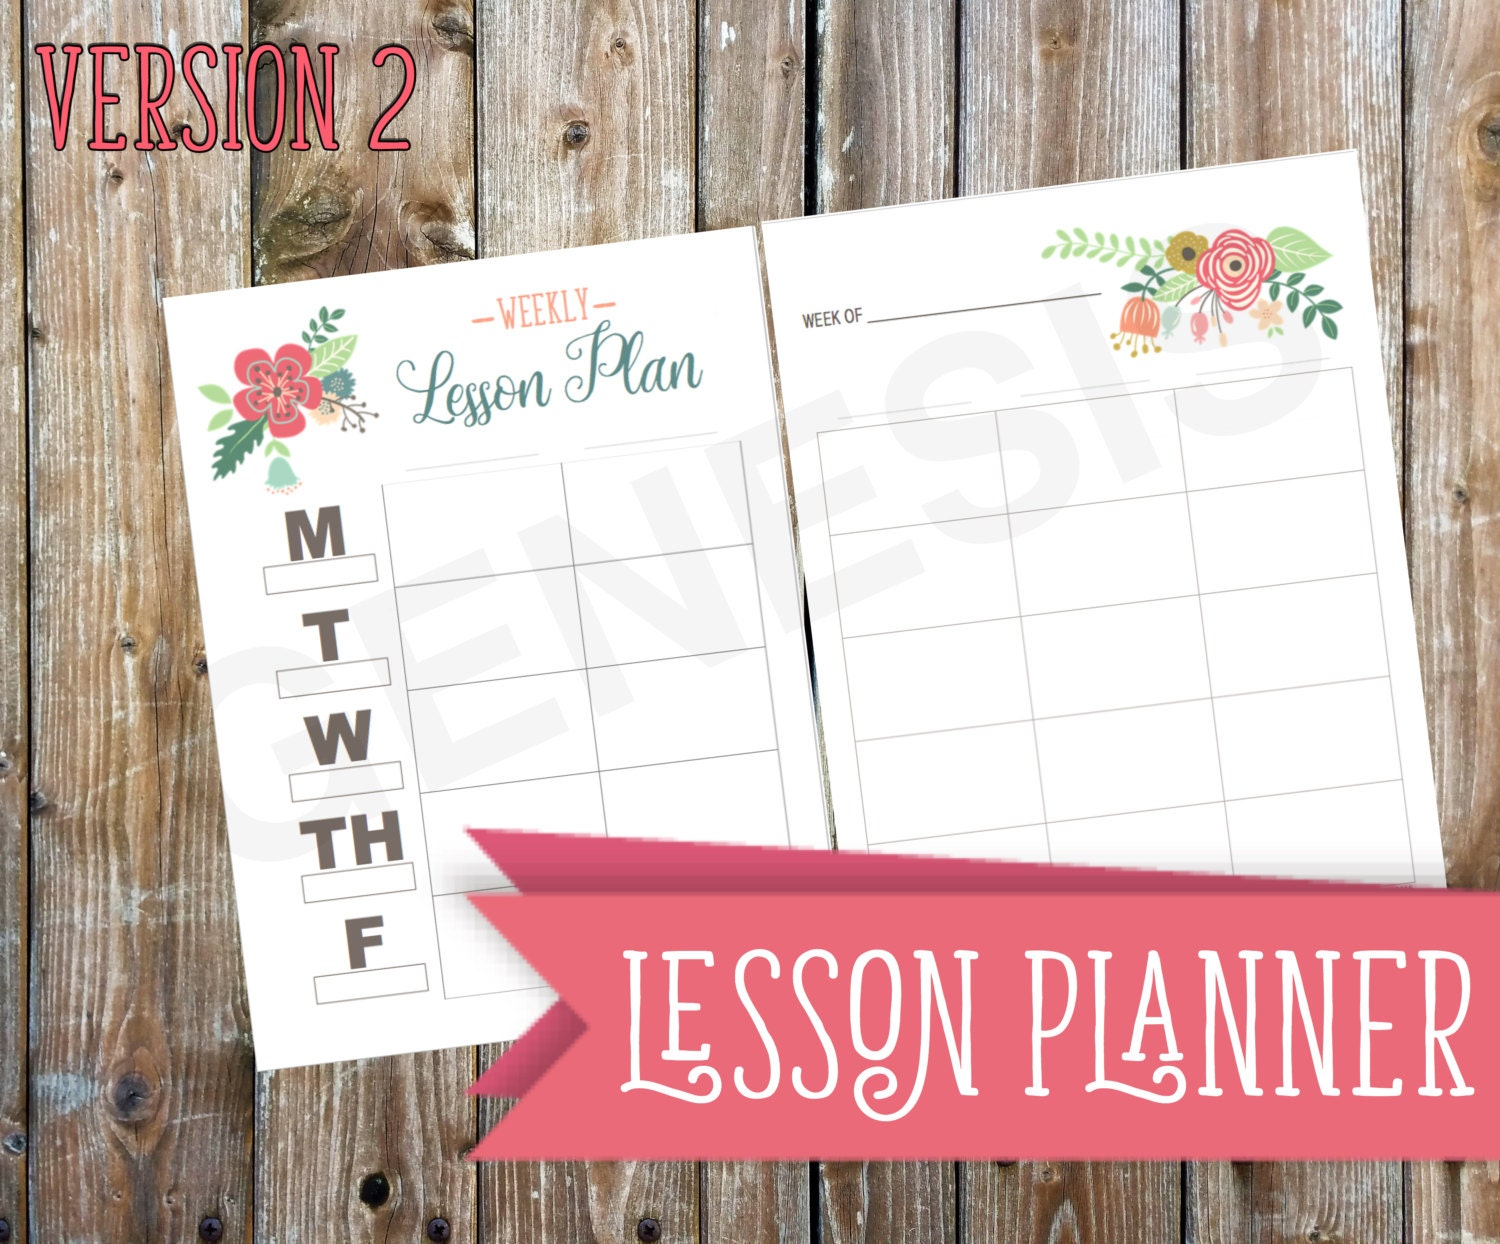 Lesson Planner Homeschool Version 2 Planner By